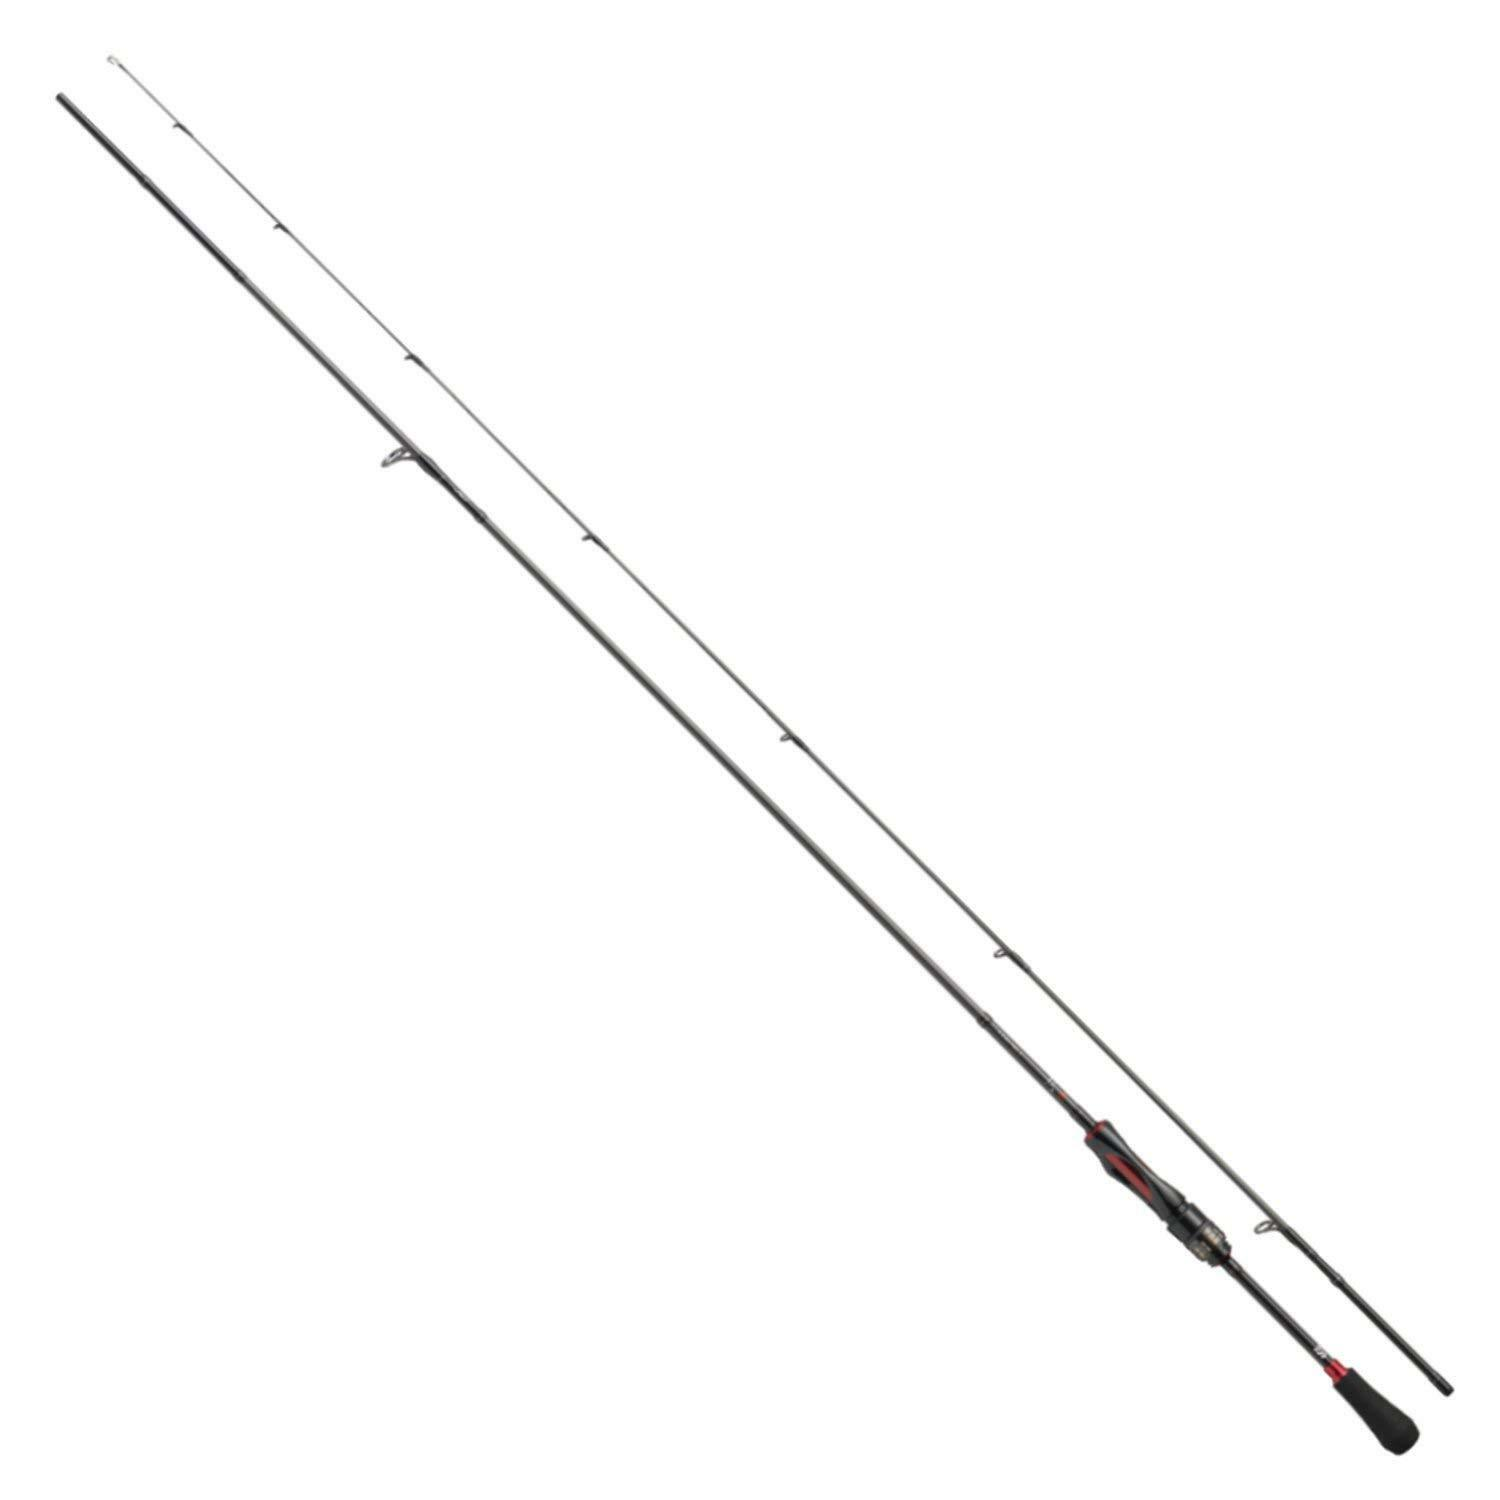 Daiwa Azing rod spinning GEKKA  BIJIN AIR AGS 79L-S Fishing rod Free shipping NEW  for wholesale